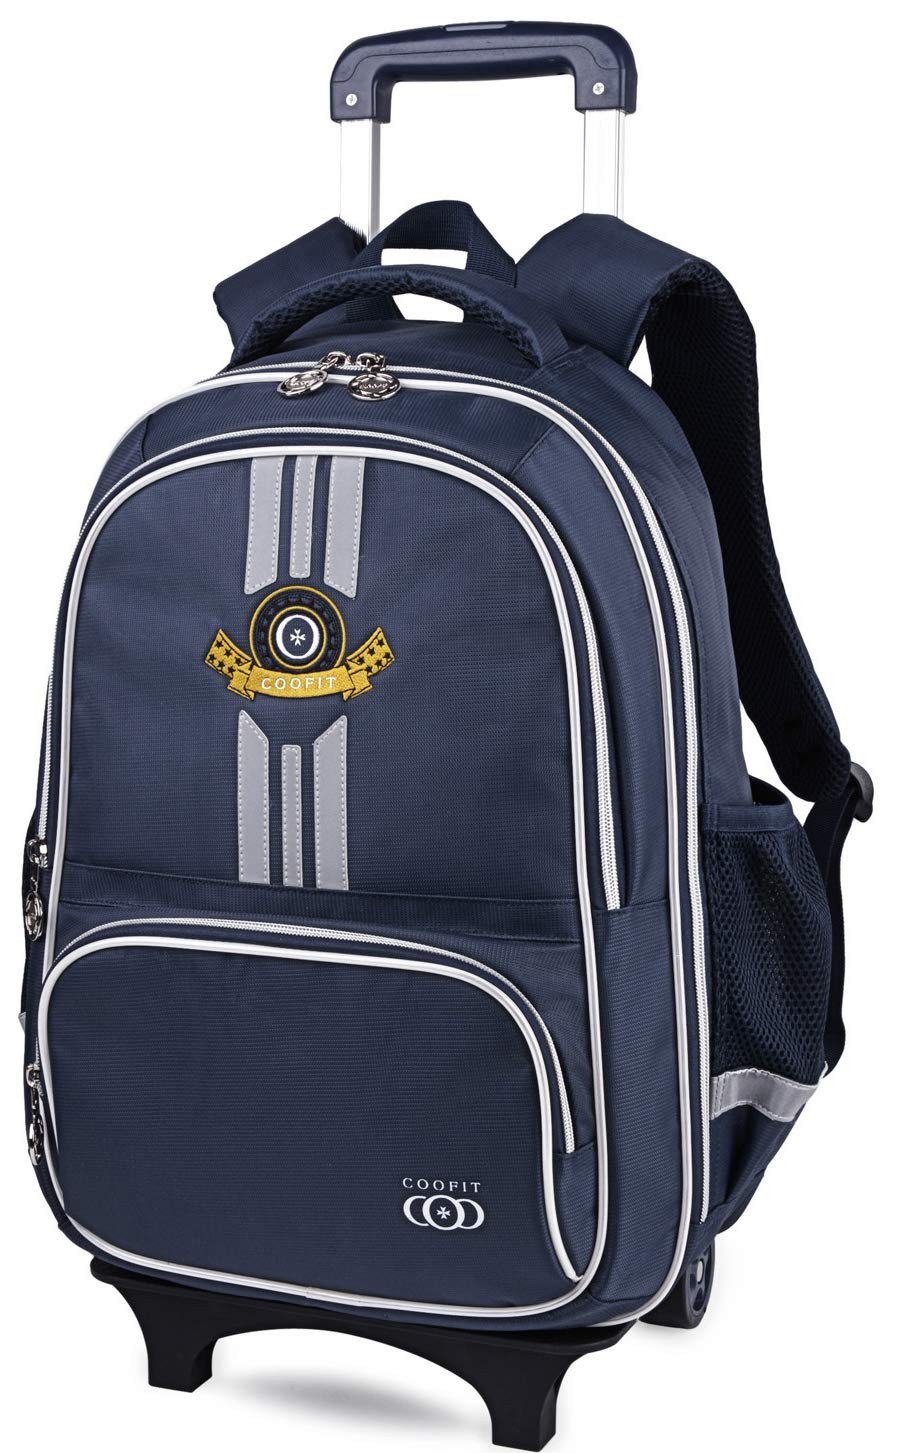 97be6f709f61 Galleon - Rolling Backpack, School Backpack With Wheels, COOFIT ...